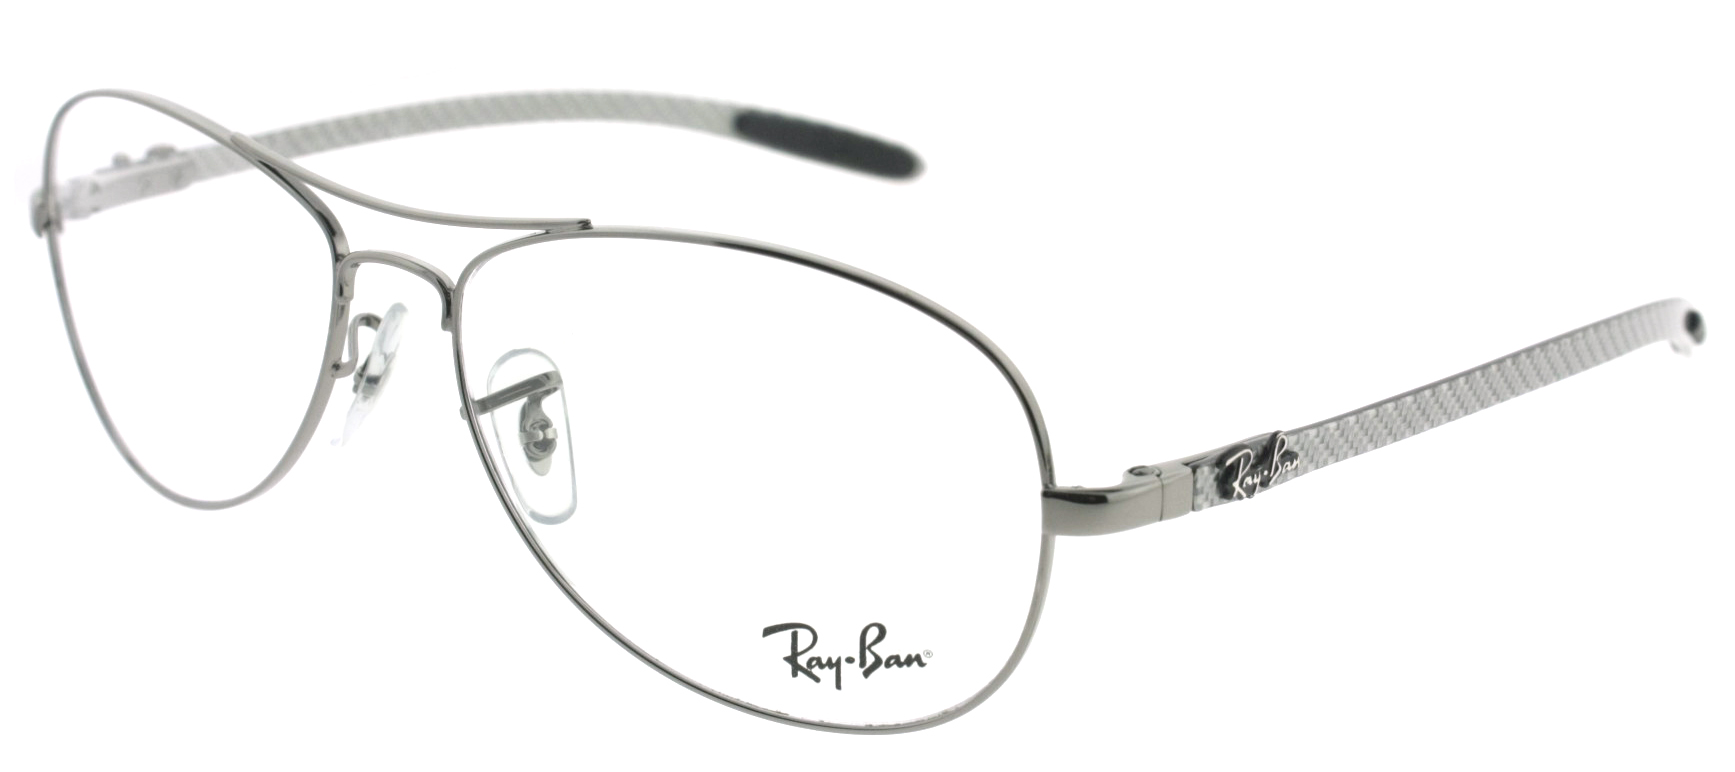 aviator frame eyeglasses  rb8403 aviator